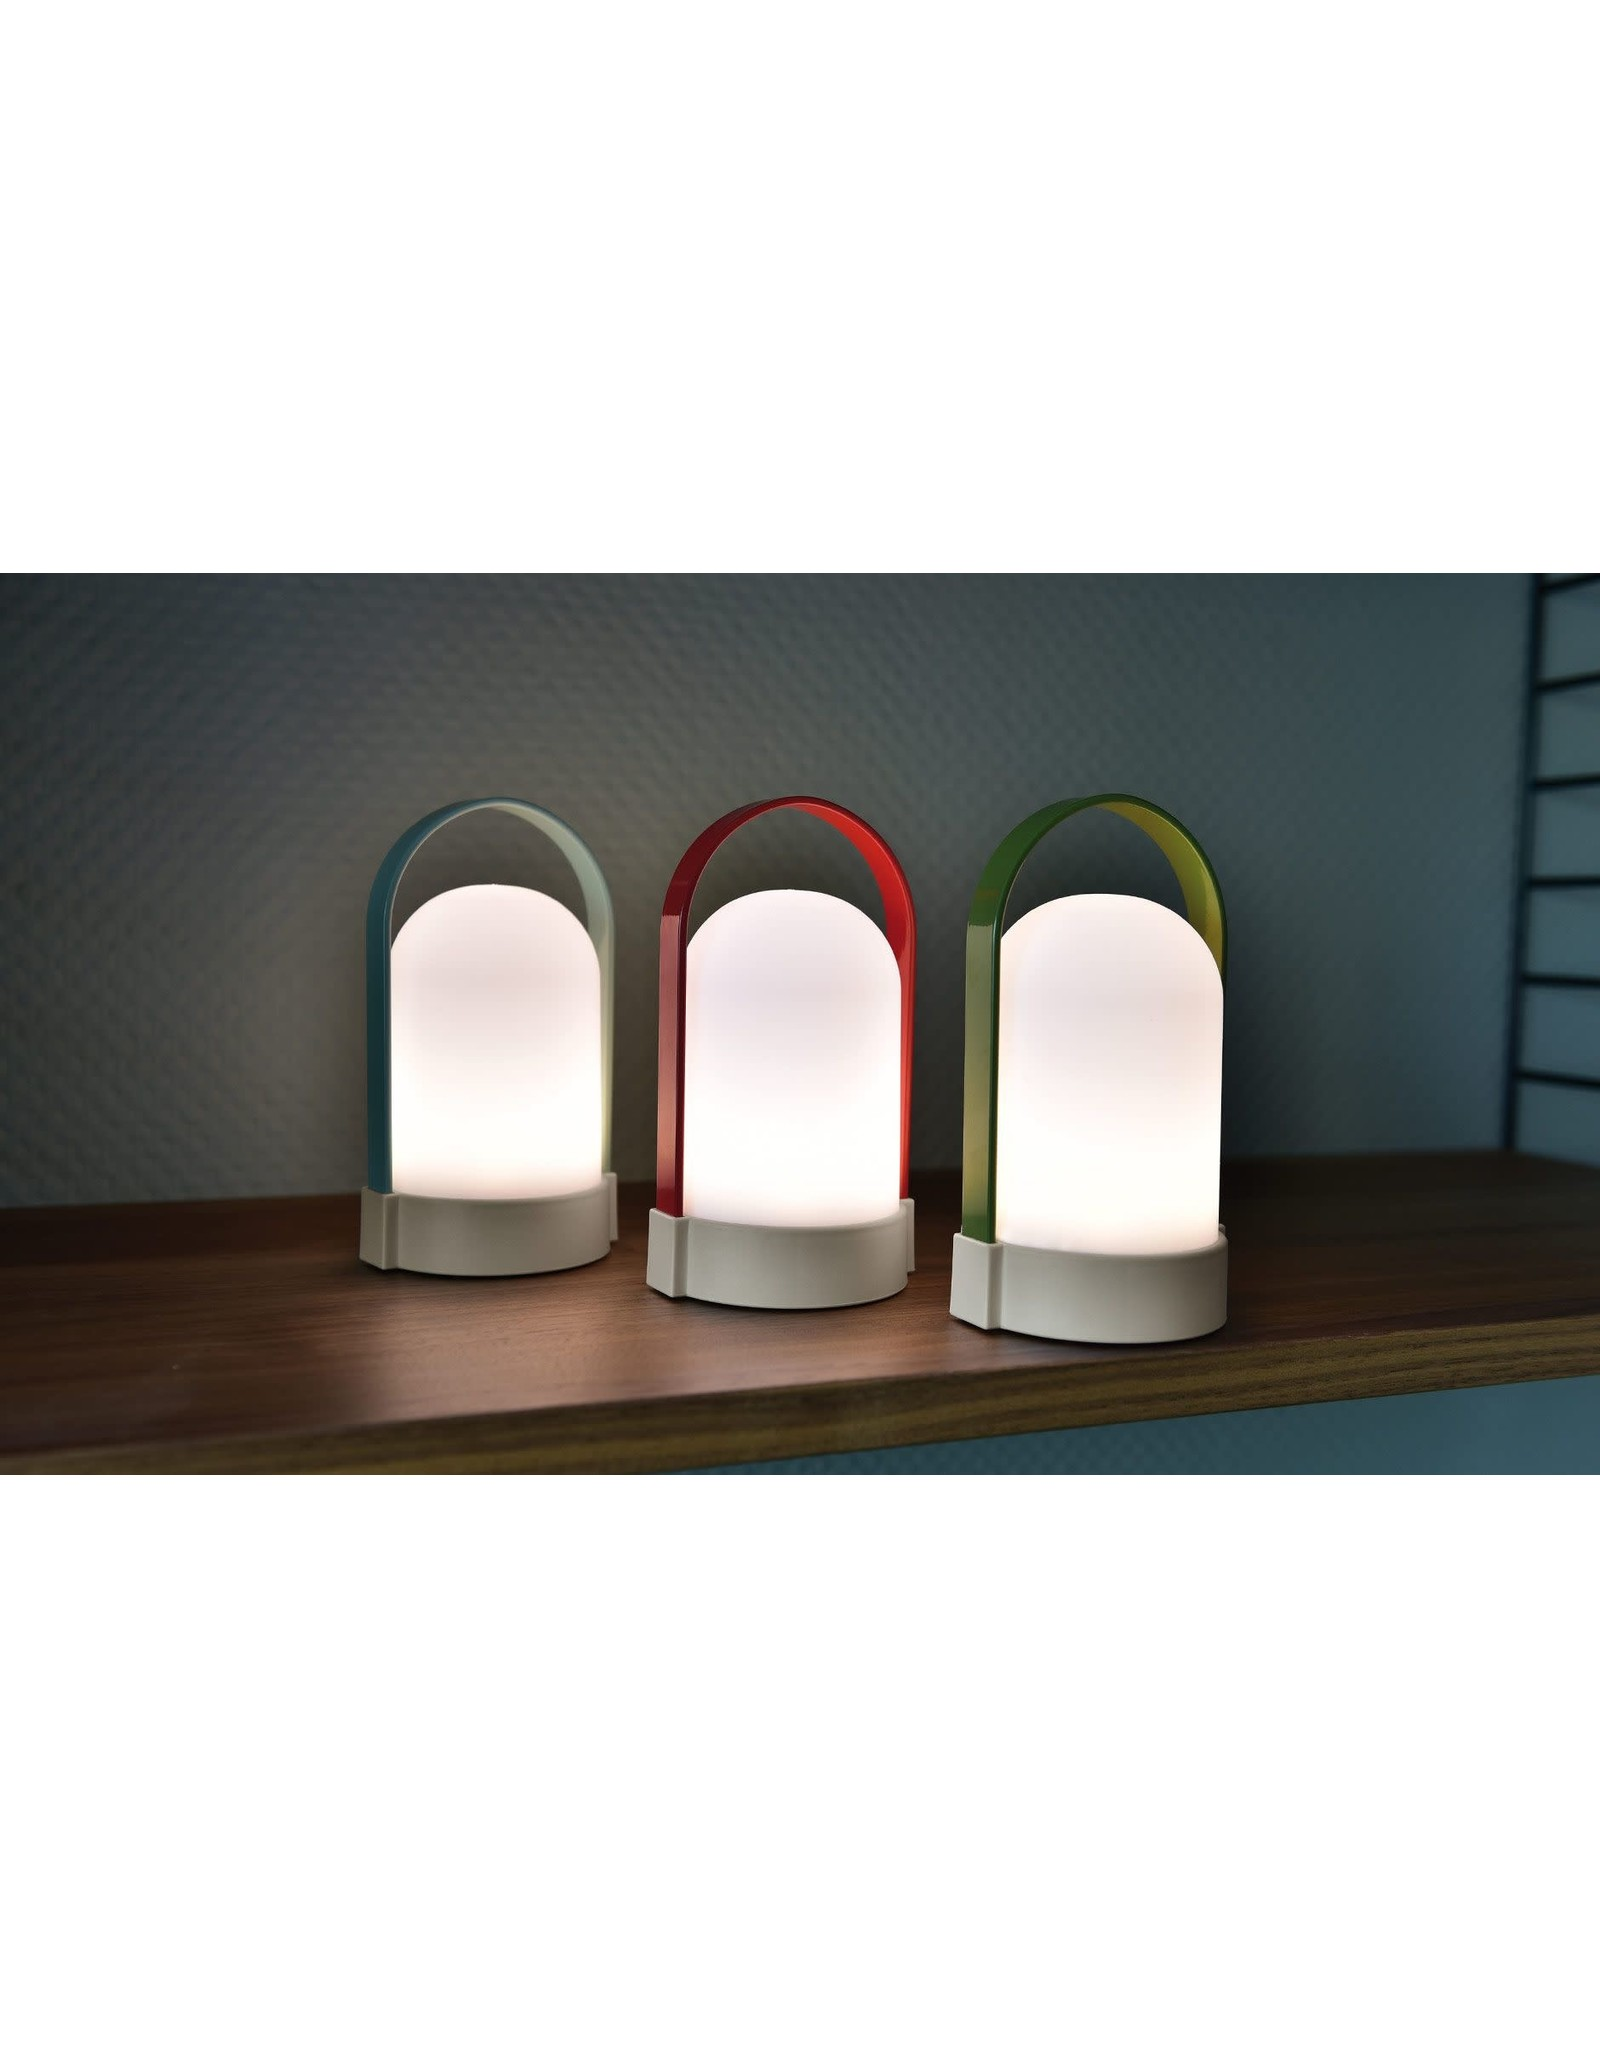 Remember 3 LED lamps with handle